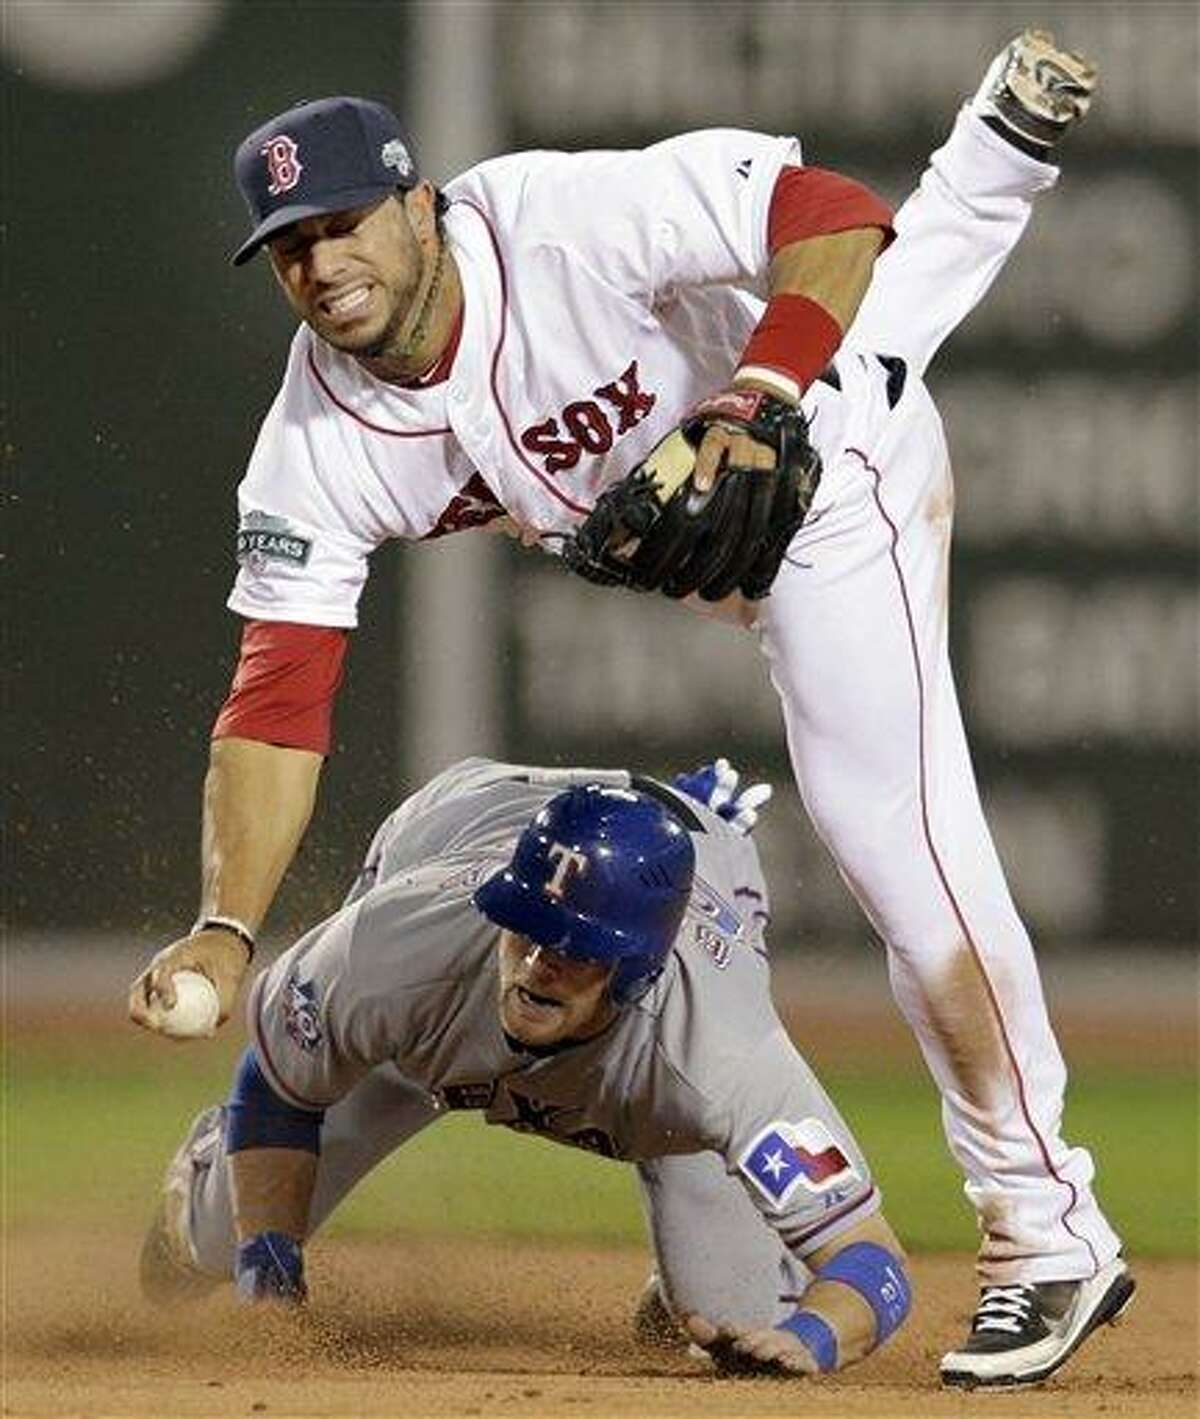 Texas Rangers' Craig Gentry slides into second to break up a double play as Boston Red Sox shortstop Mike Aviles cannot make a play to first during the fifth inning of a baseball game at Fenway Park in Boston, Tuesday, April 17, 2012. Ian Kinsler was safe at first. (AP Photo/Elise Amendola)